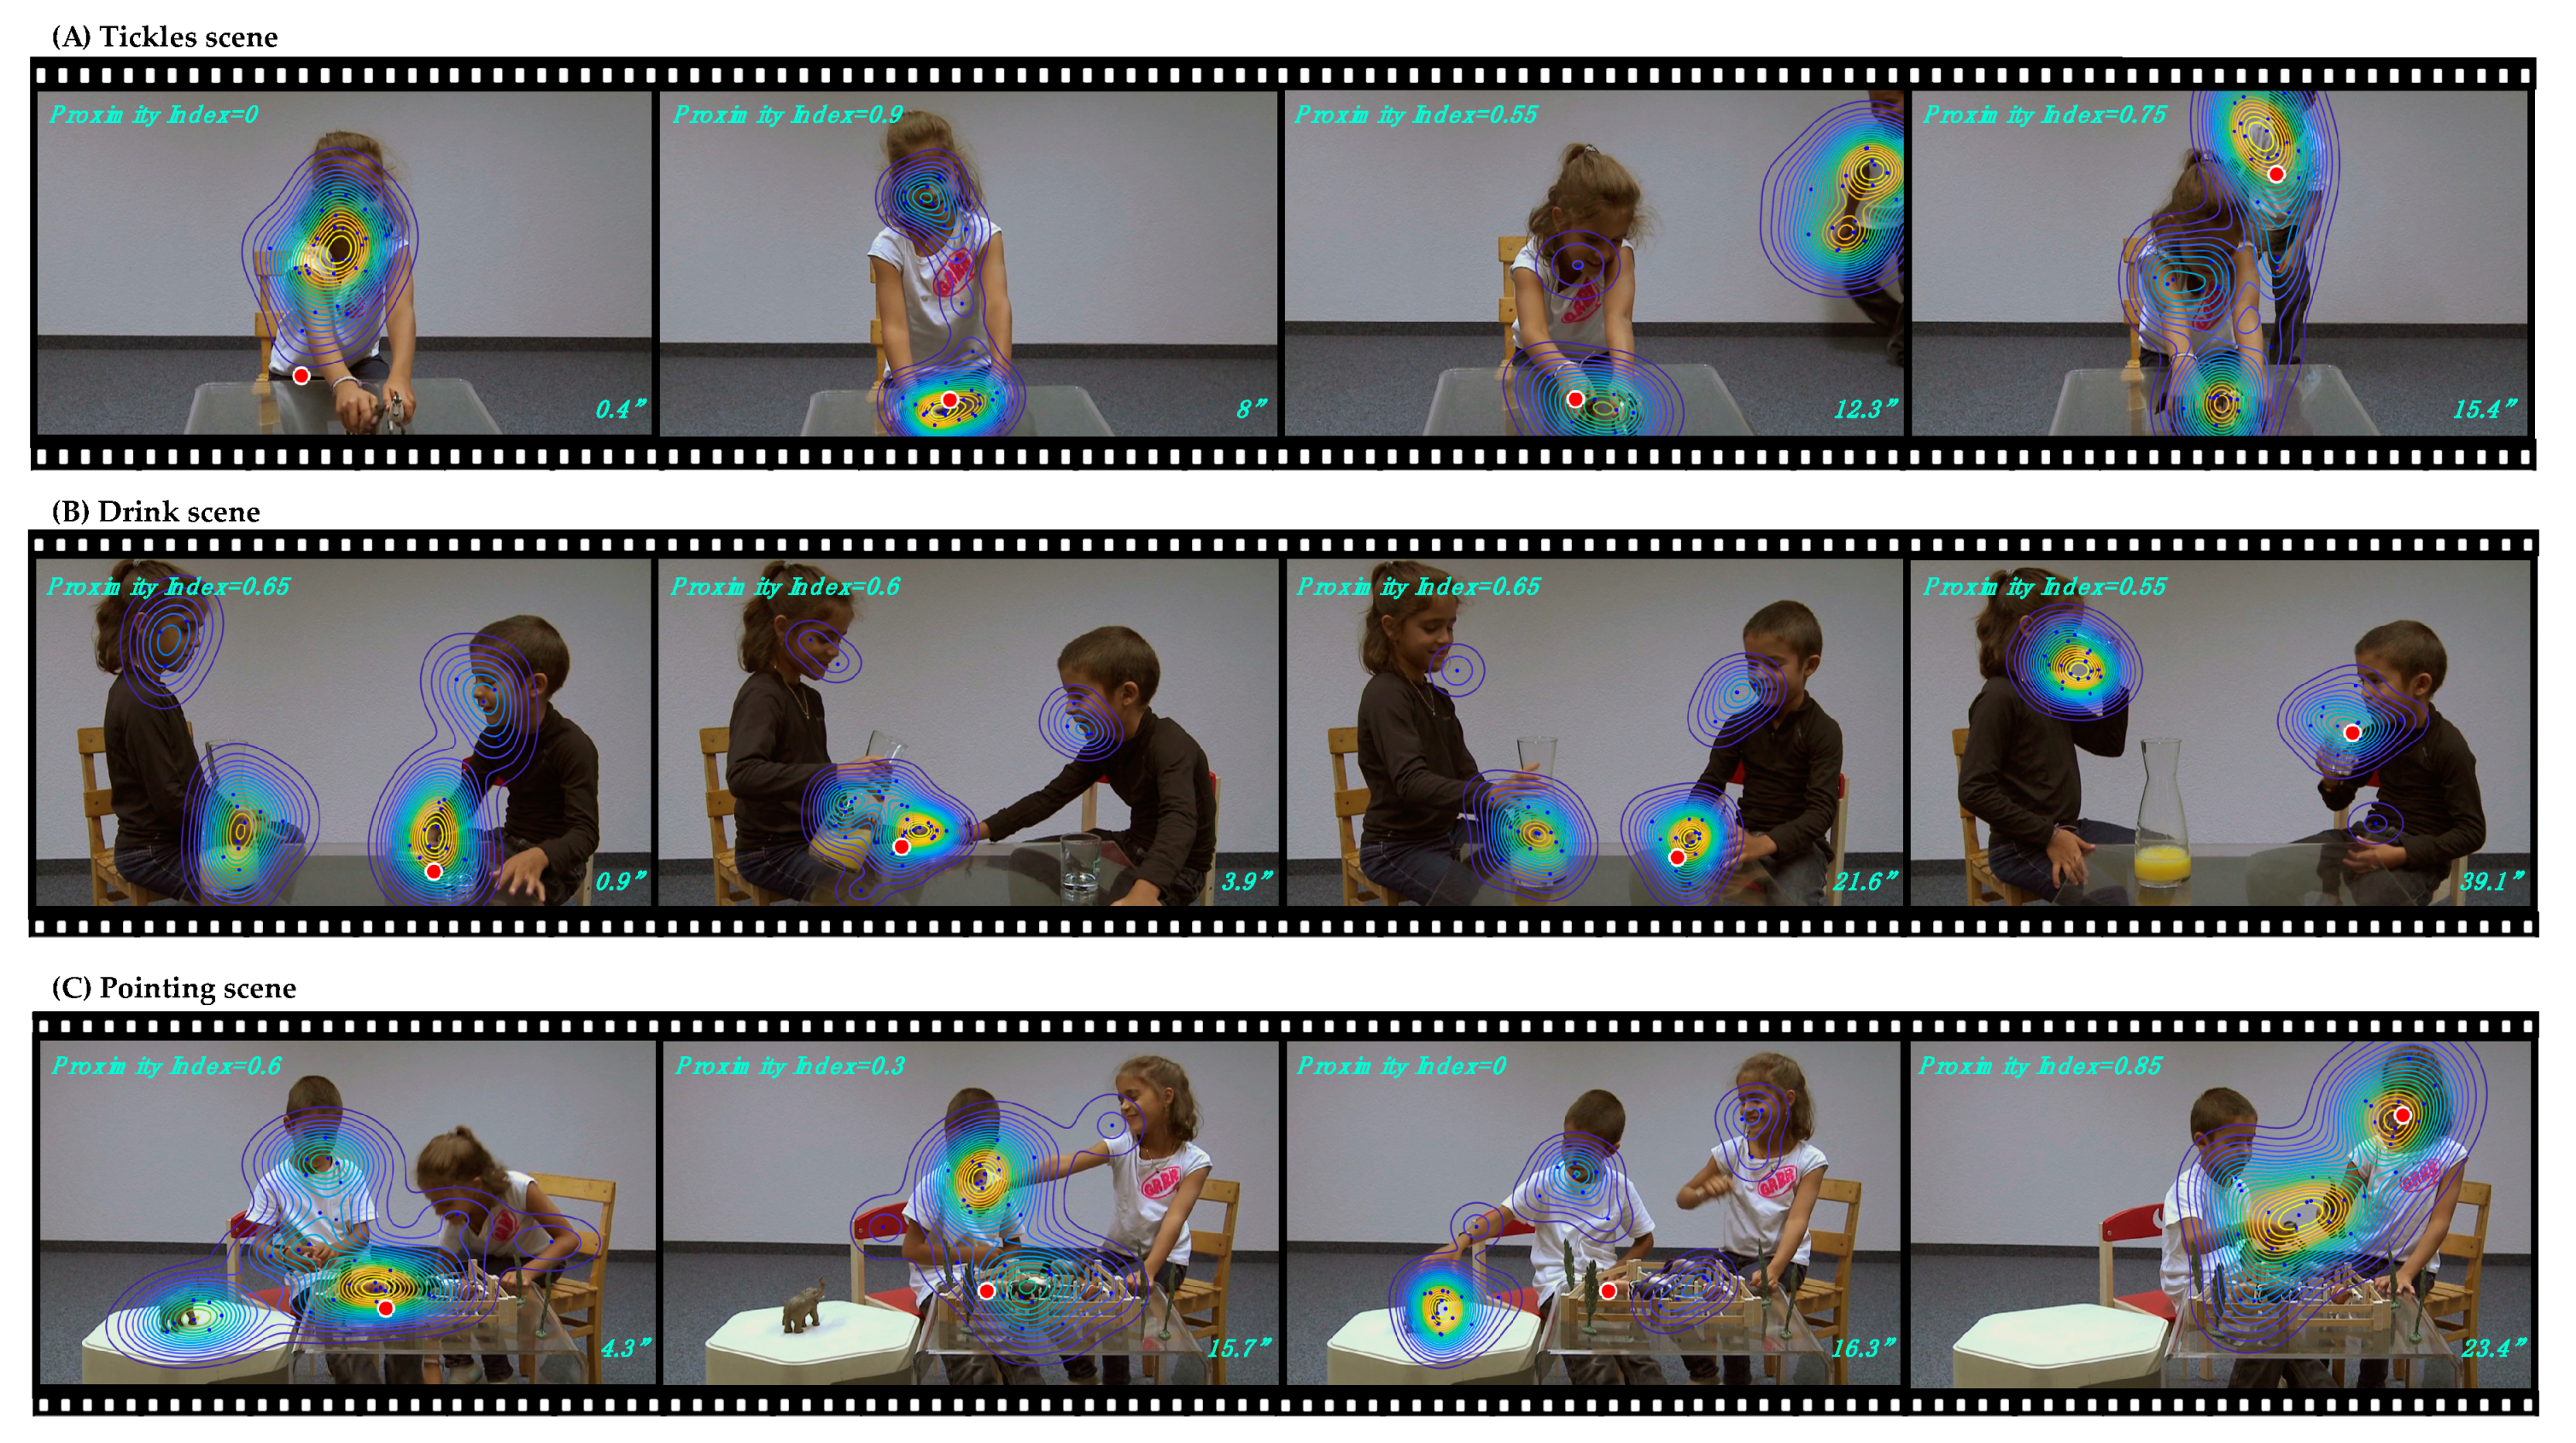 Screening For Autism Spectrum Disorders State Of The Art In Europe >> Jcm Free Full Text Sensory Processing Issues And Their